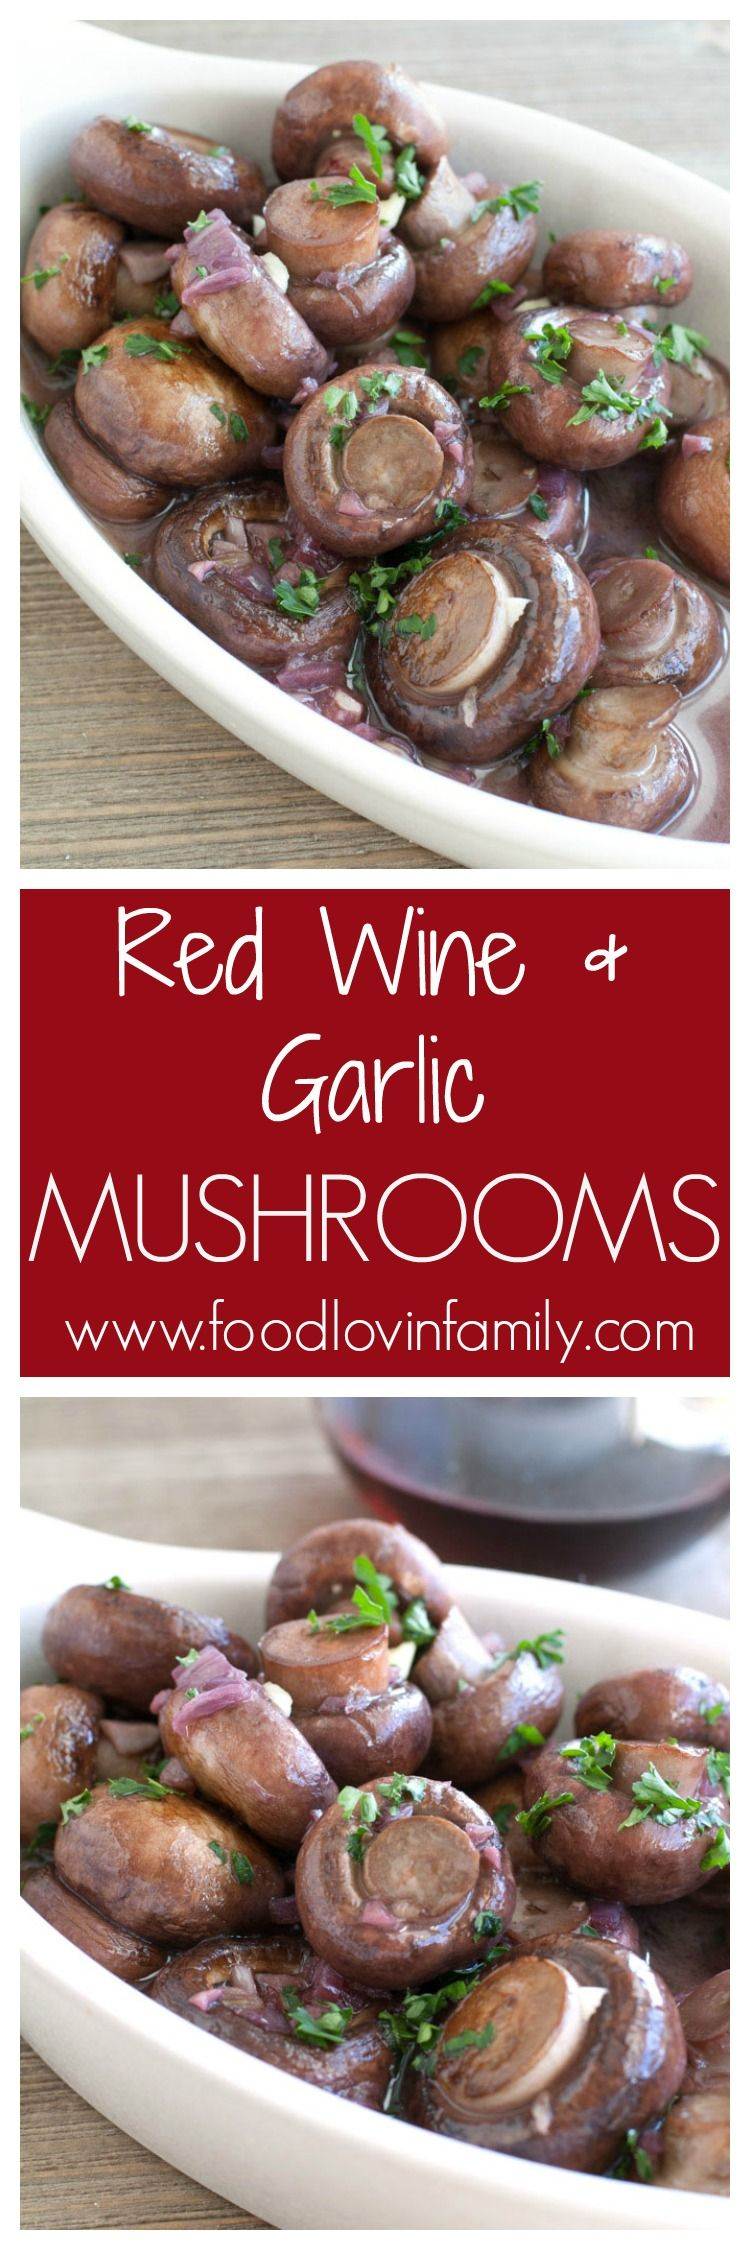 Red Wine And Garlic Mushrooms Are A Simple And Elegant Side Dish Serve For A Dinner Party The Holida Stuffed Mushrooms Garlic Mushrooms Vegetable Side Dishes